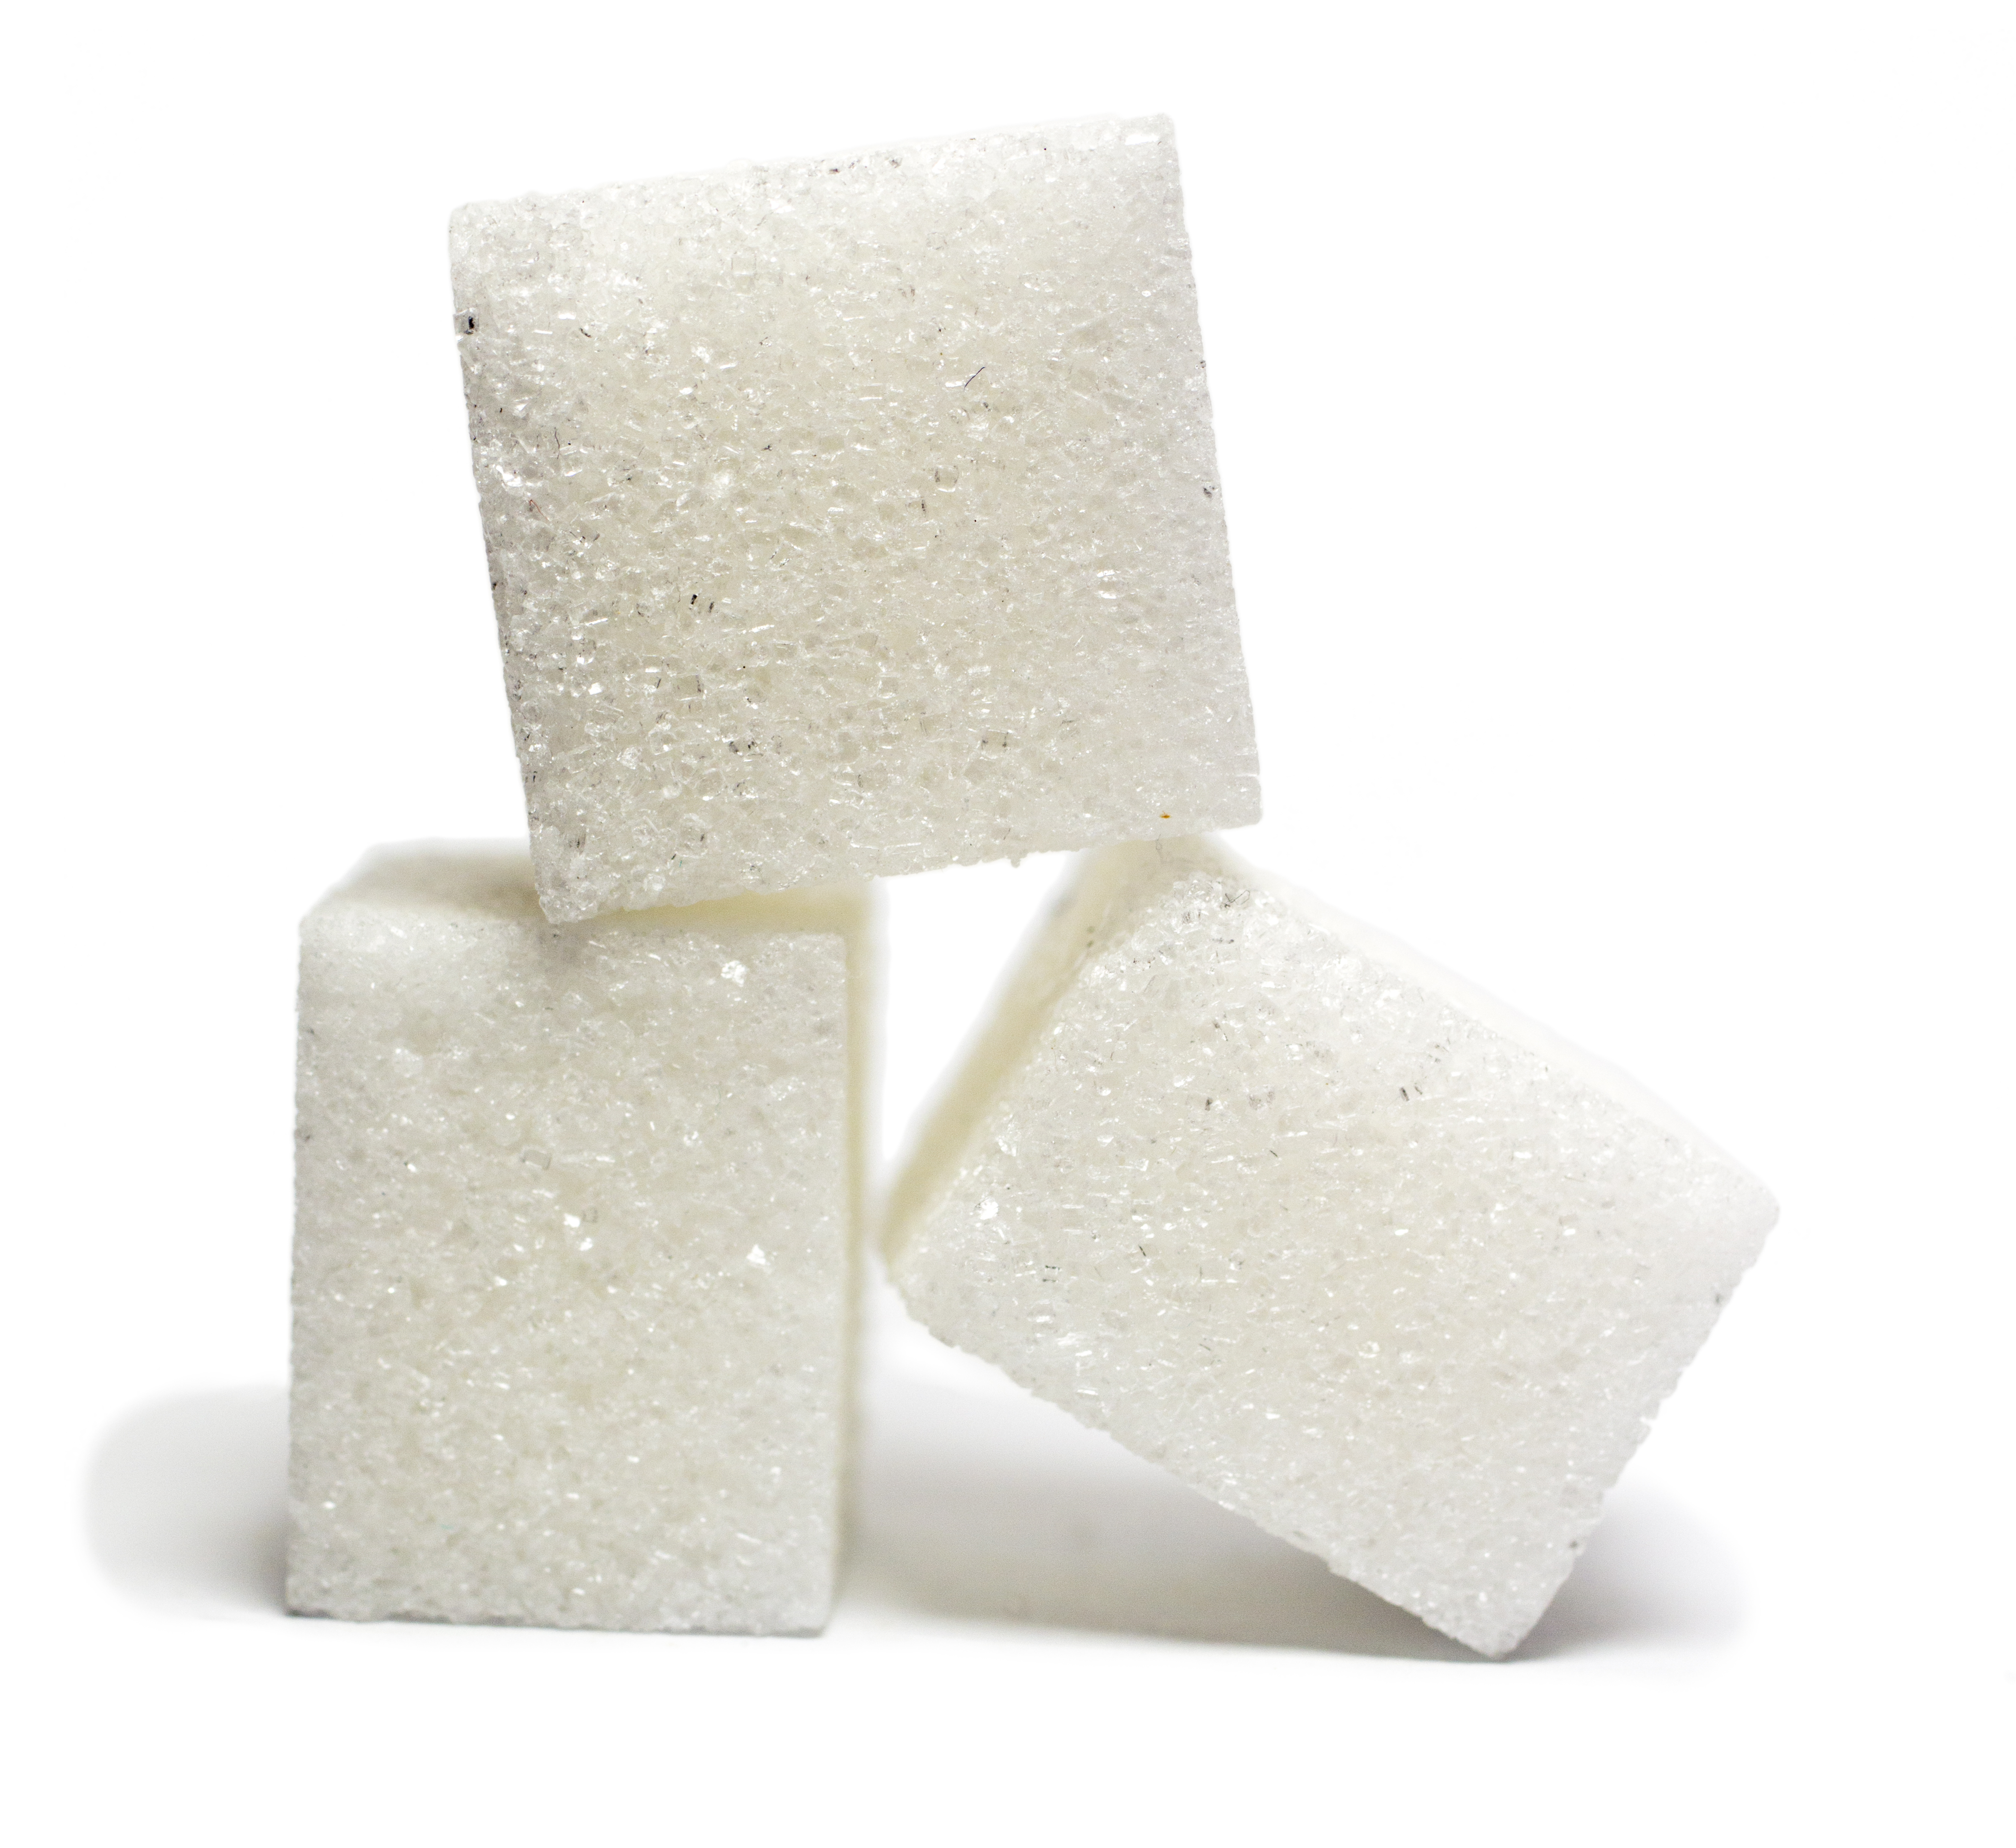 Refined sugar significantly raises heart-disease risk. - Sugar PNG